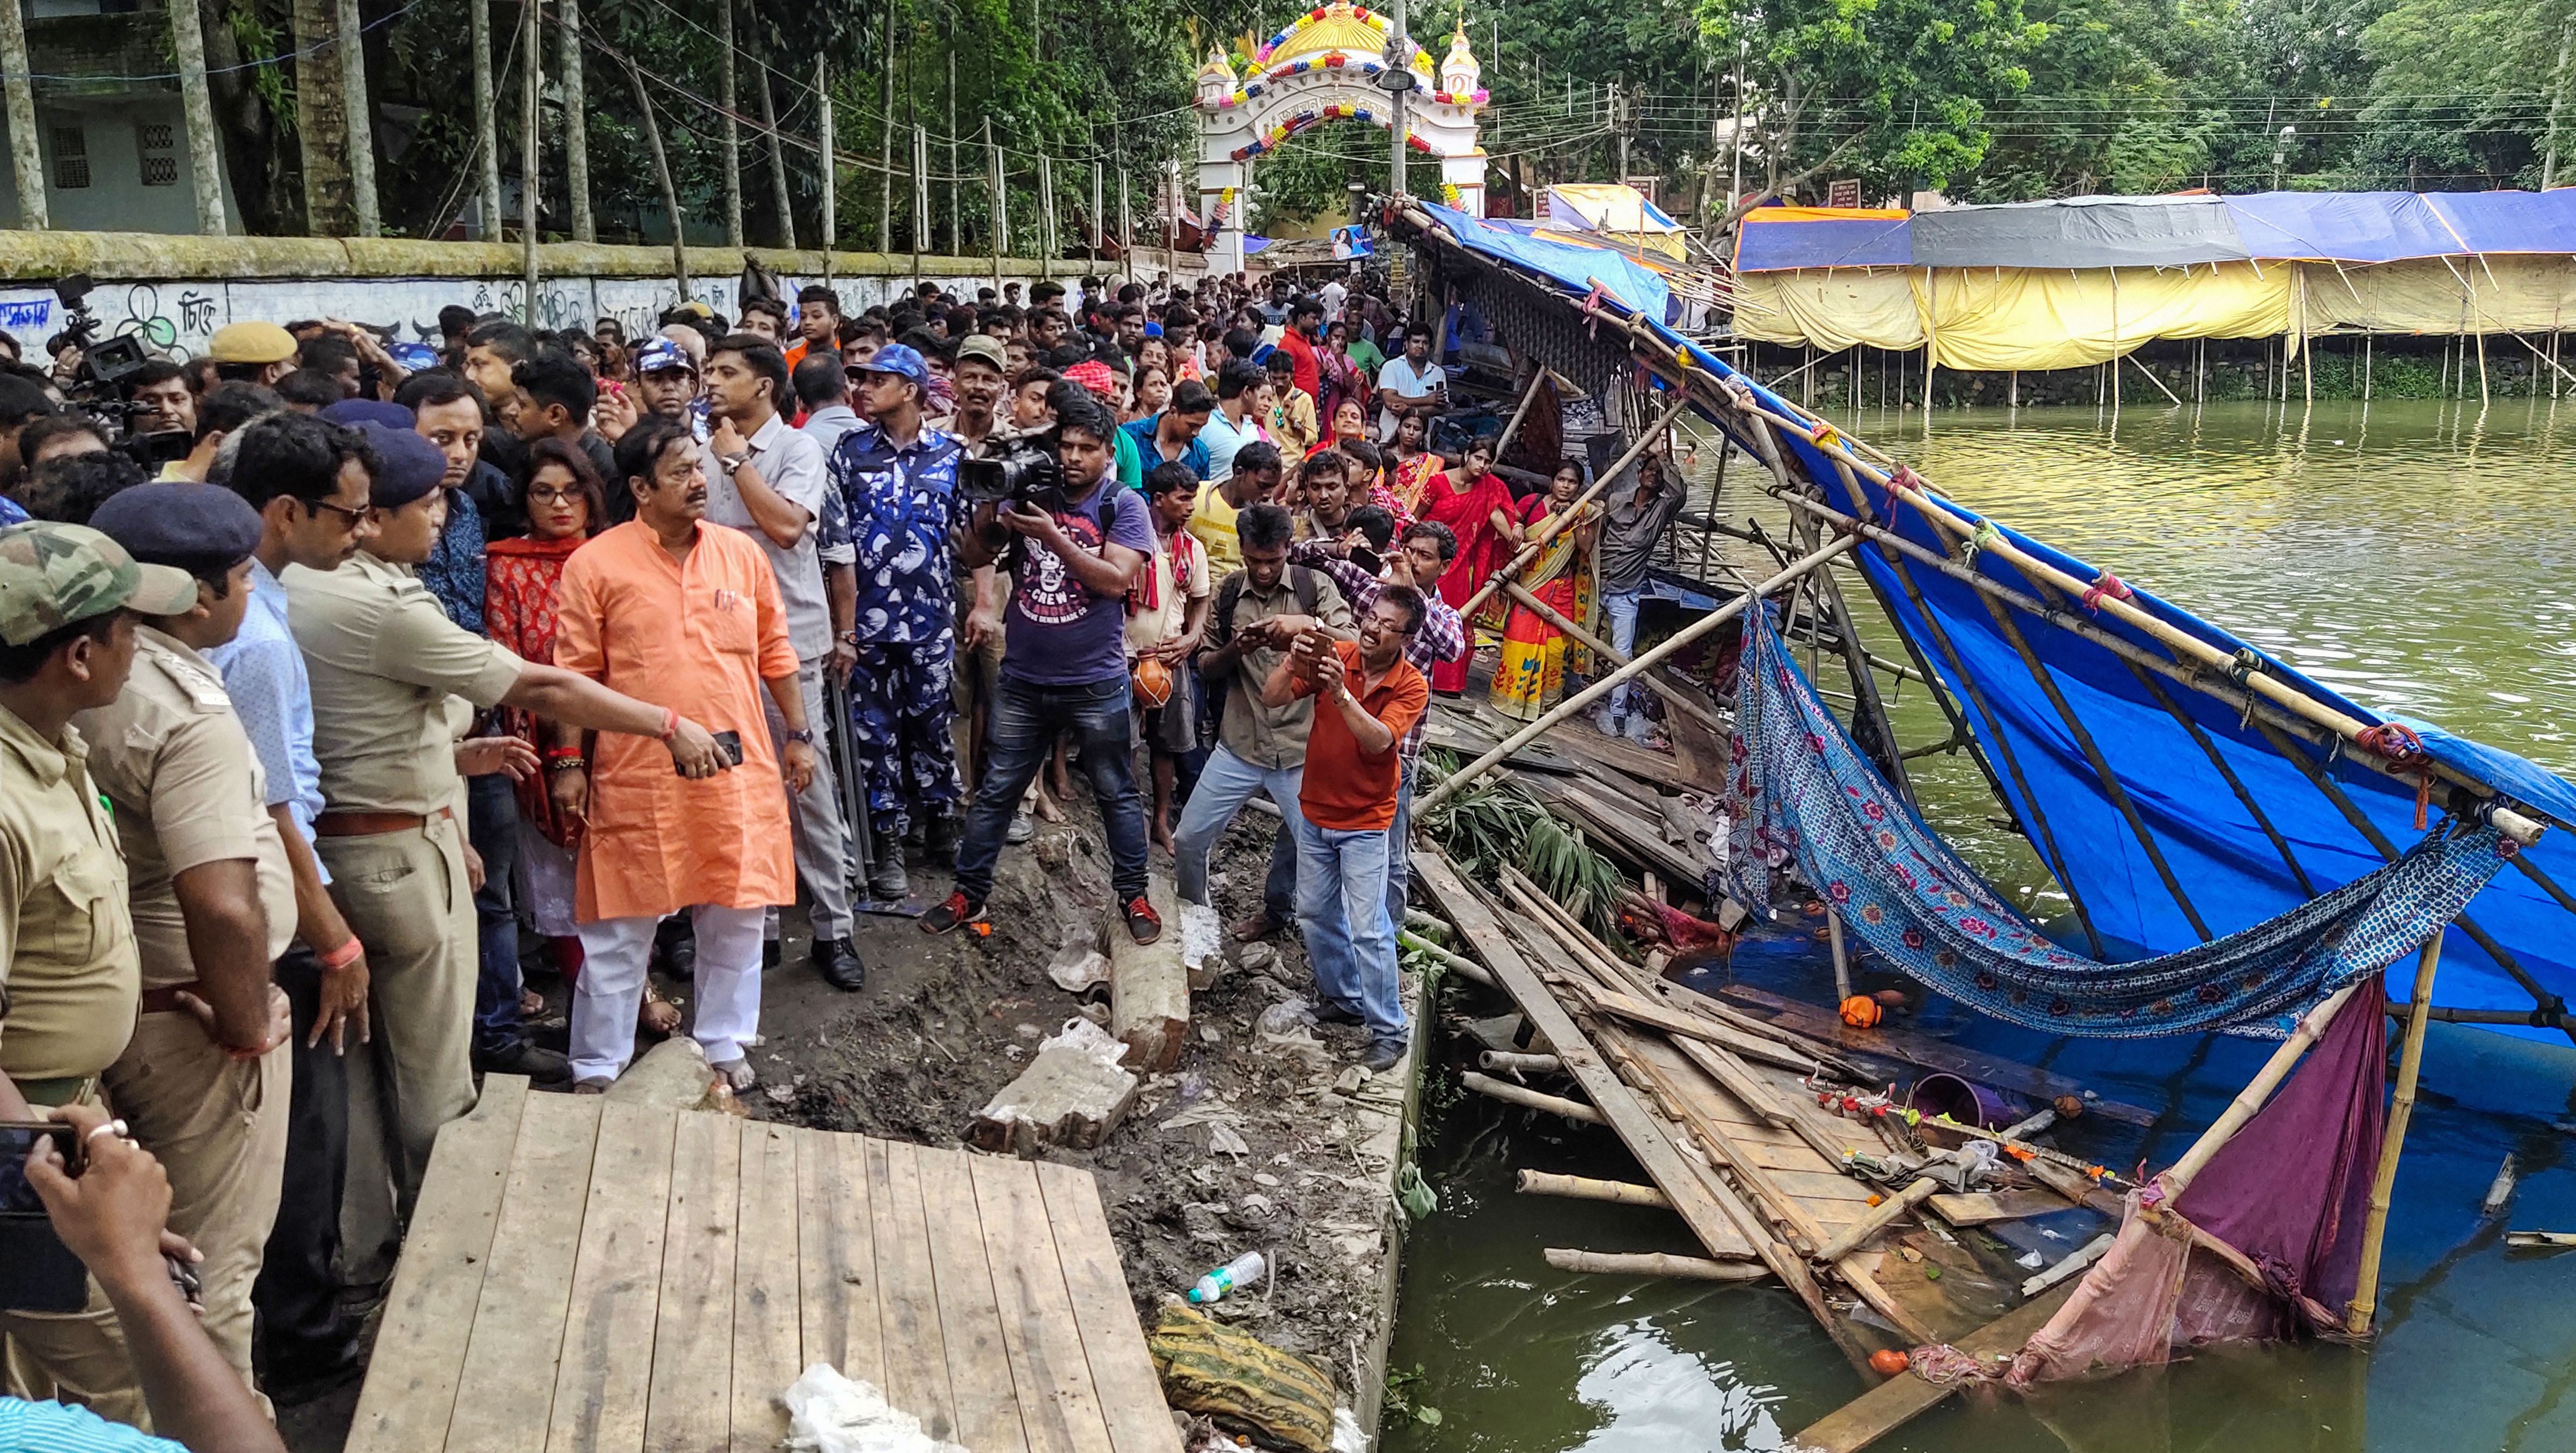 Police personnel investigate the site where a wall collapse in Kachua triggered a stampede like situation, in North 24 Parganas district of West Bengal, Friday, August 23, 2019.